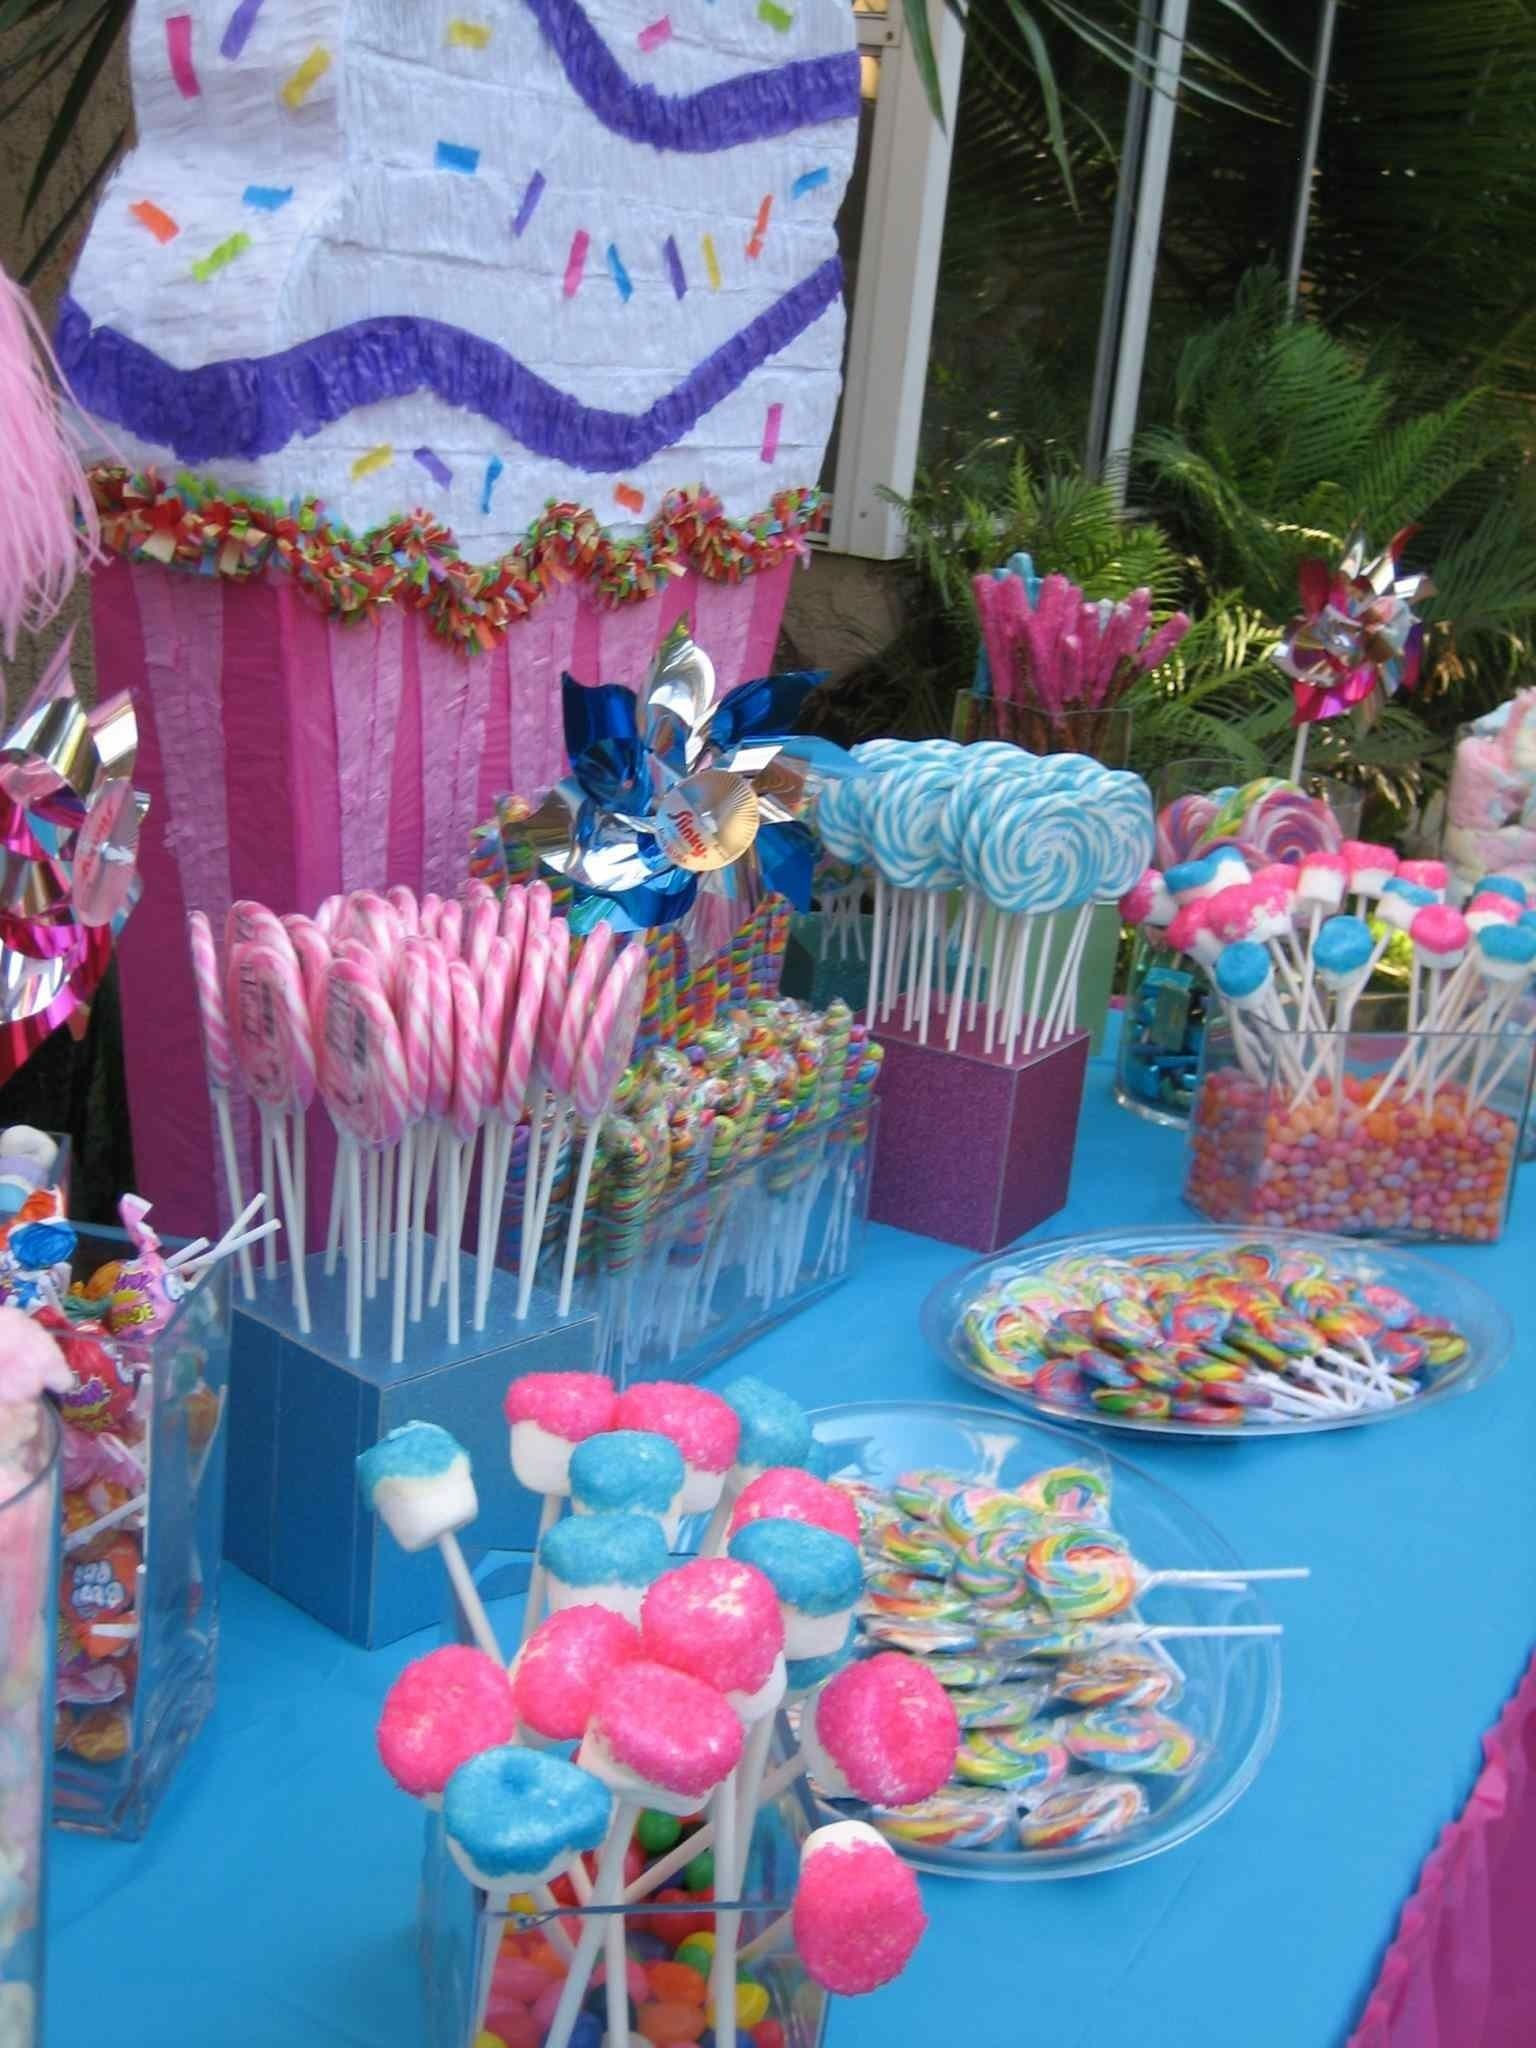 10 Gorgeous 16Th Birthday Party Ideas On A Budget itus 16th birthday party ideas on a budget going to be sweet jpg 2021